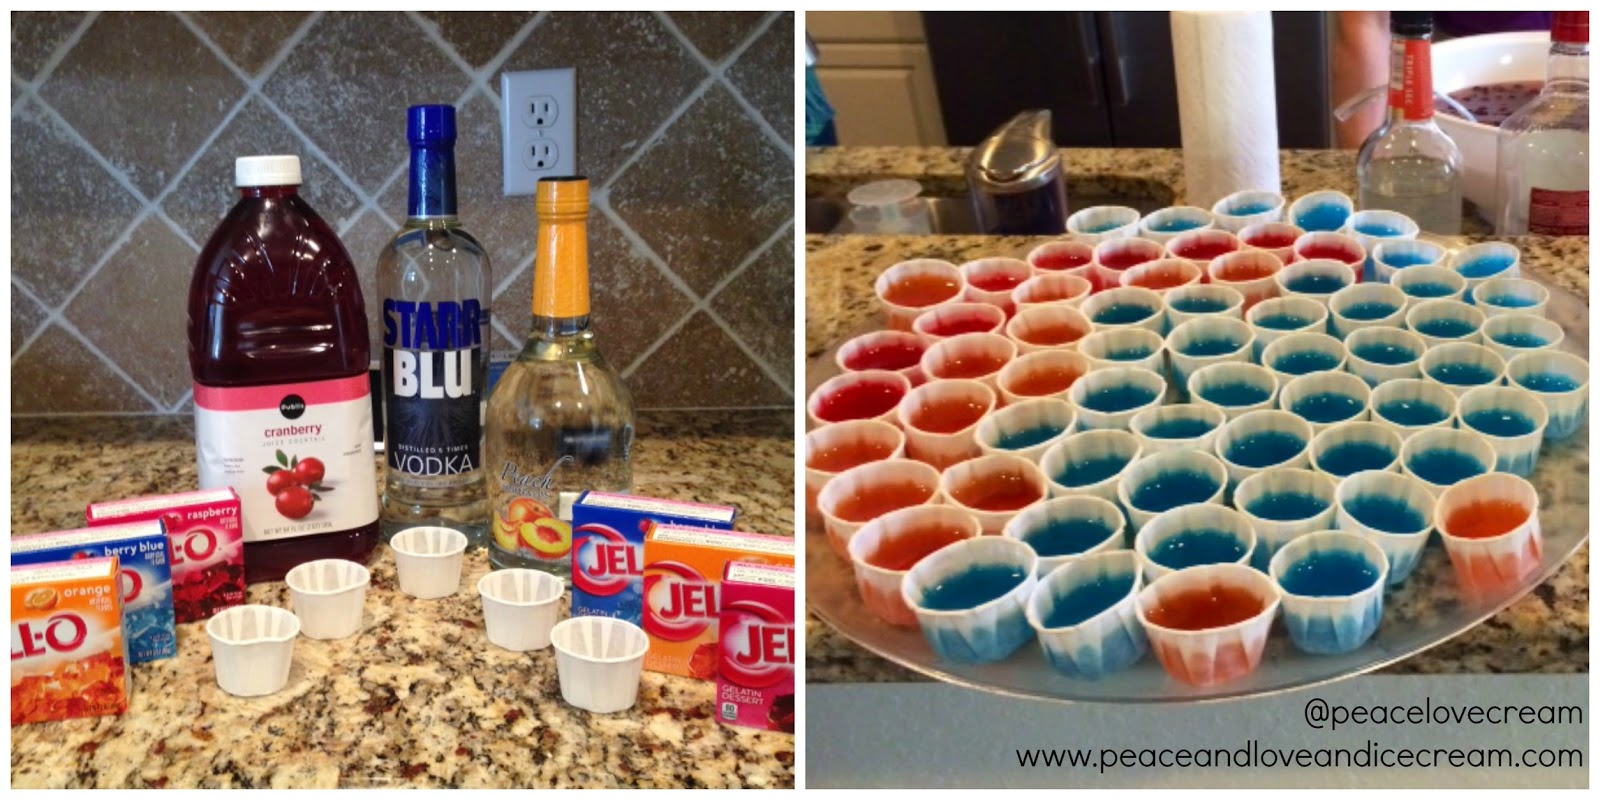 I made awesome jello shots for our awesome 80s bash!